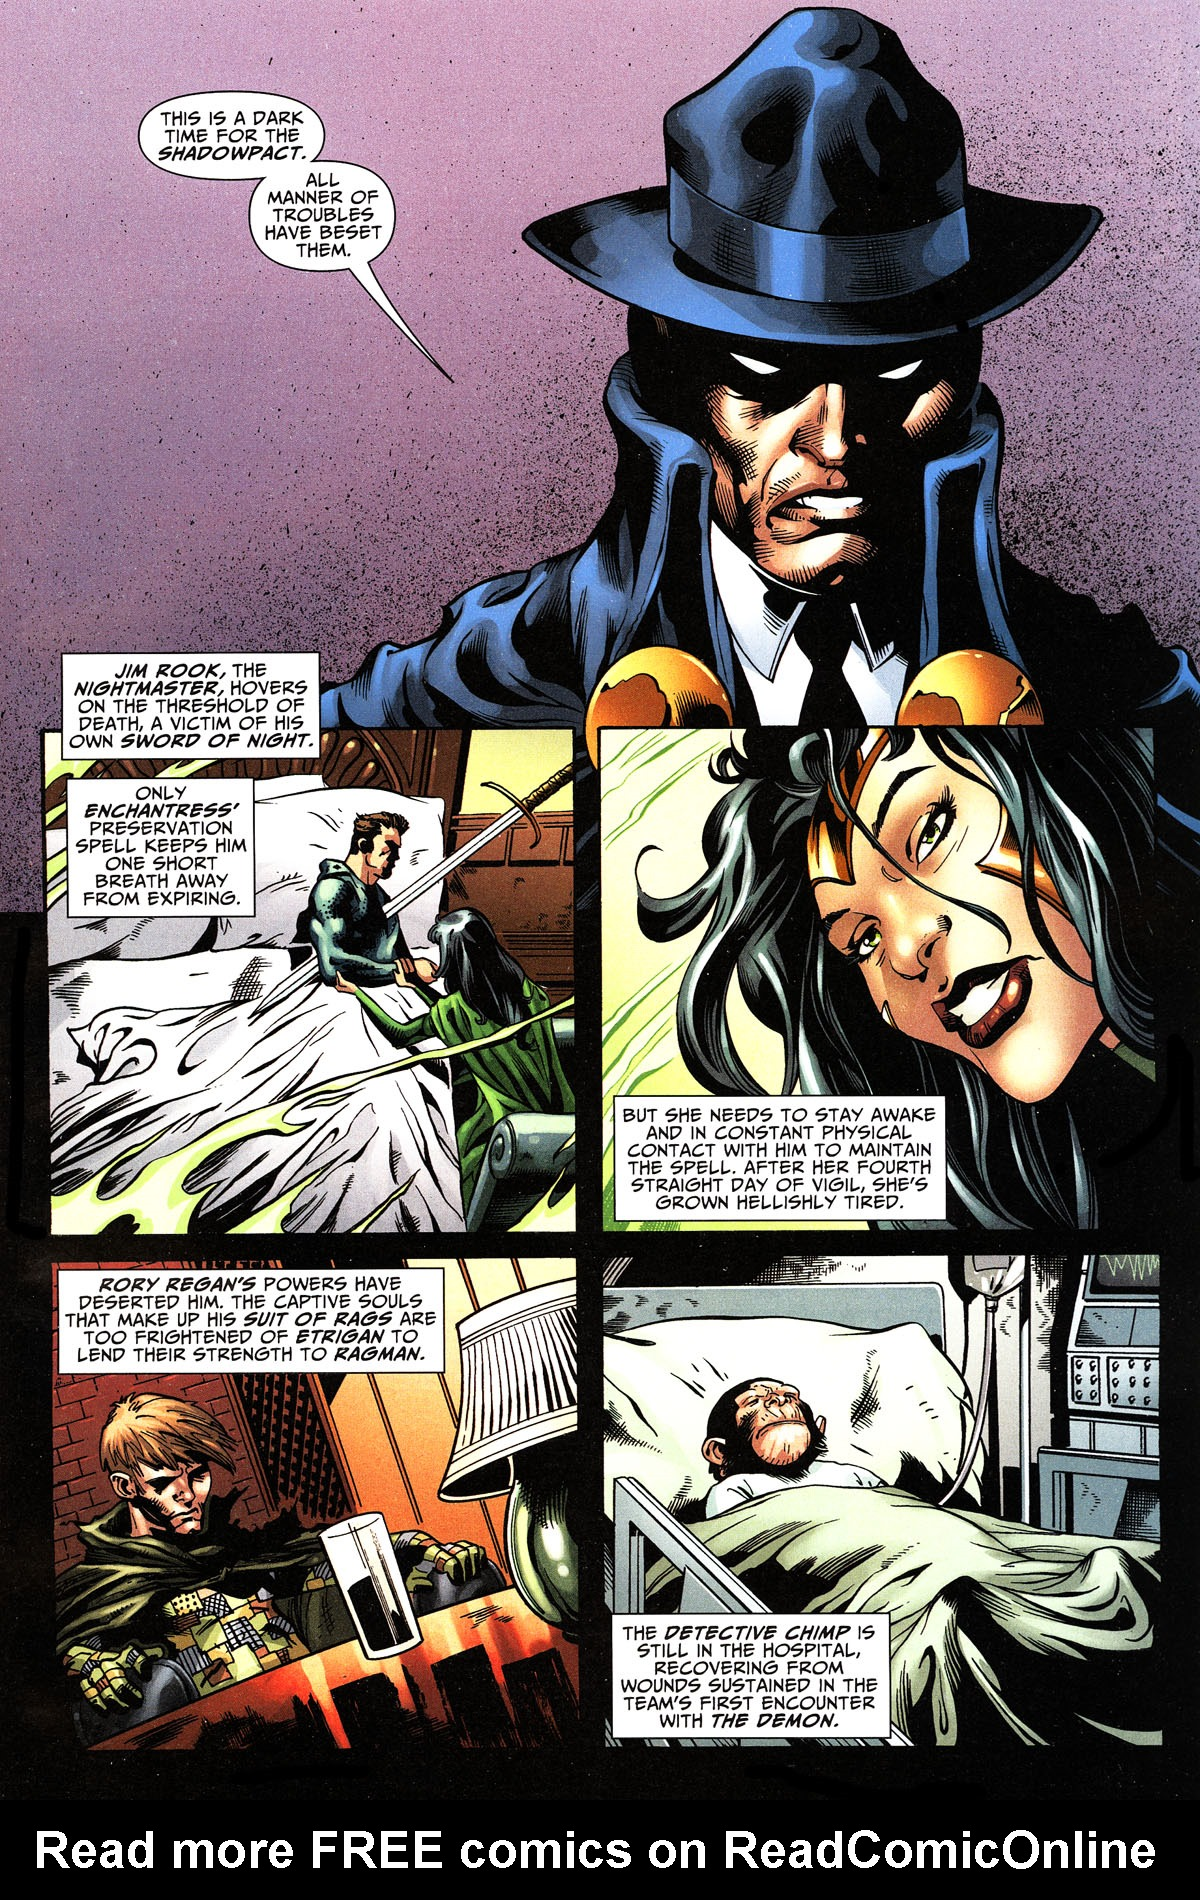 Read online Shadowpact comic -  Issue #11 - 2